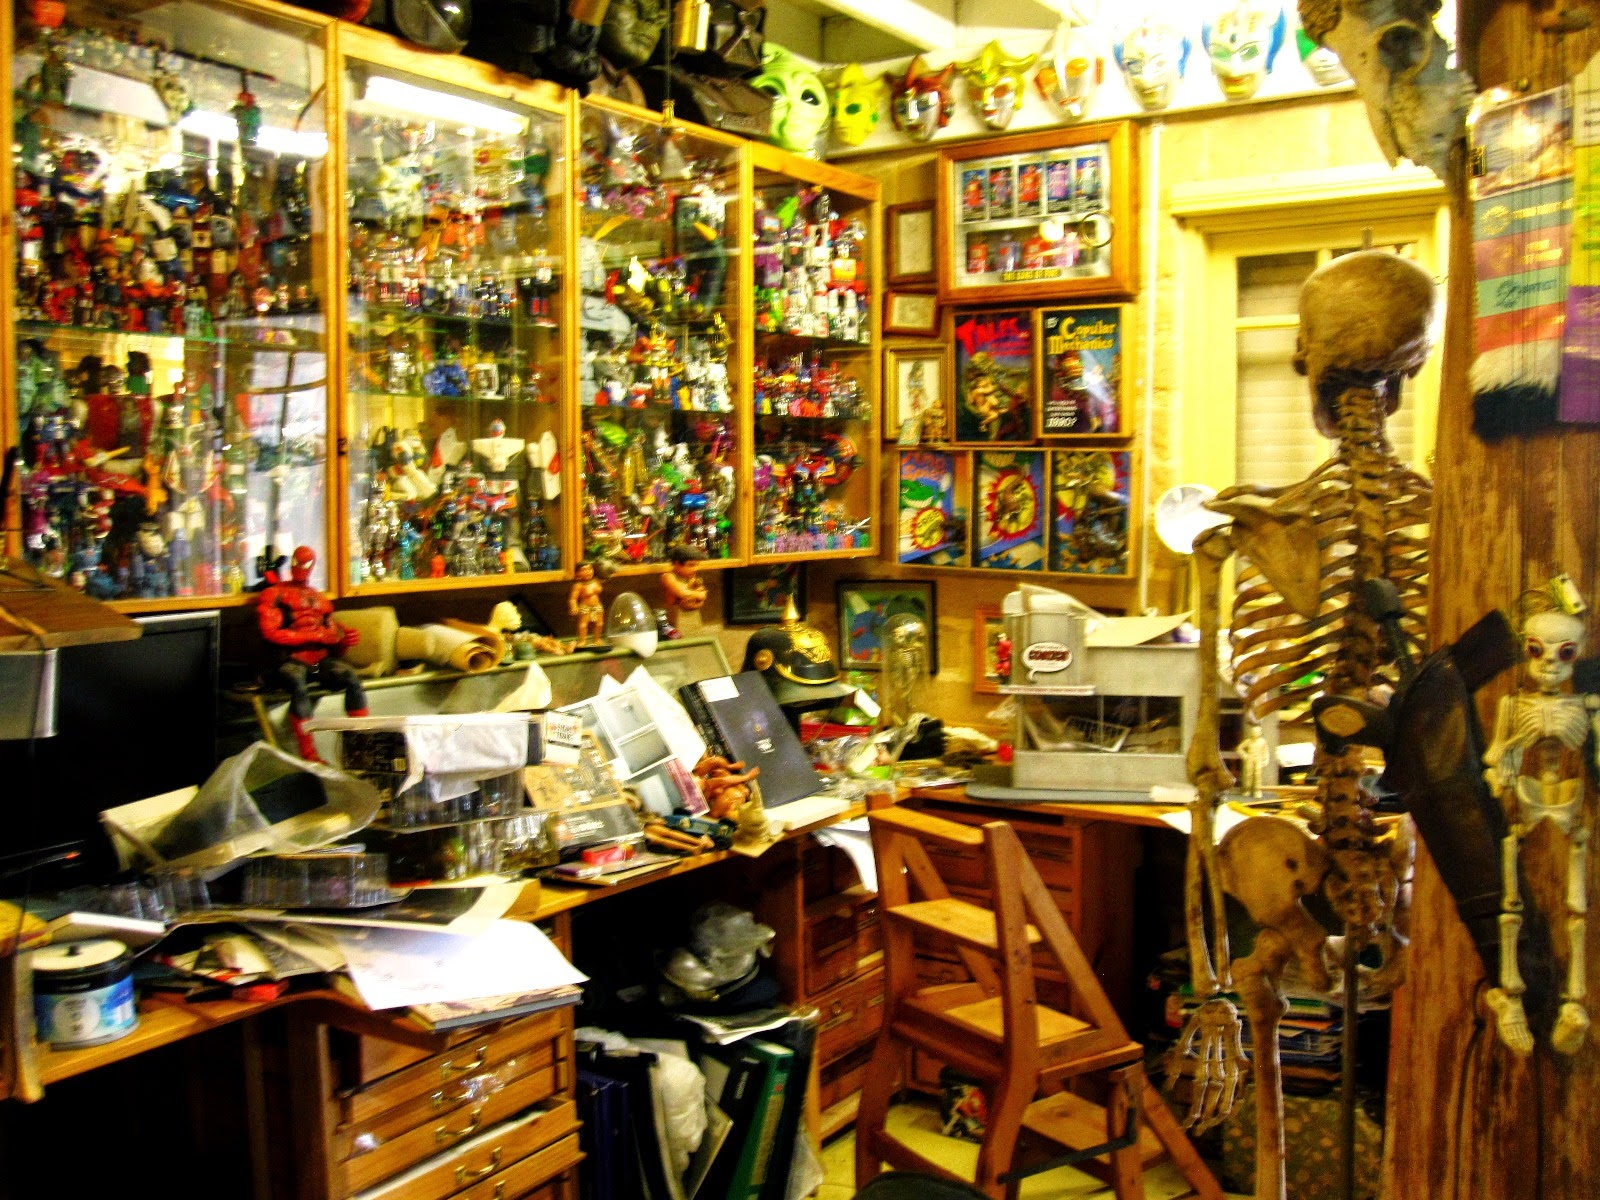 Workspace surrounded with glass cabinets full of Japanese toys.